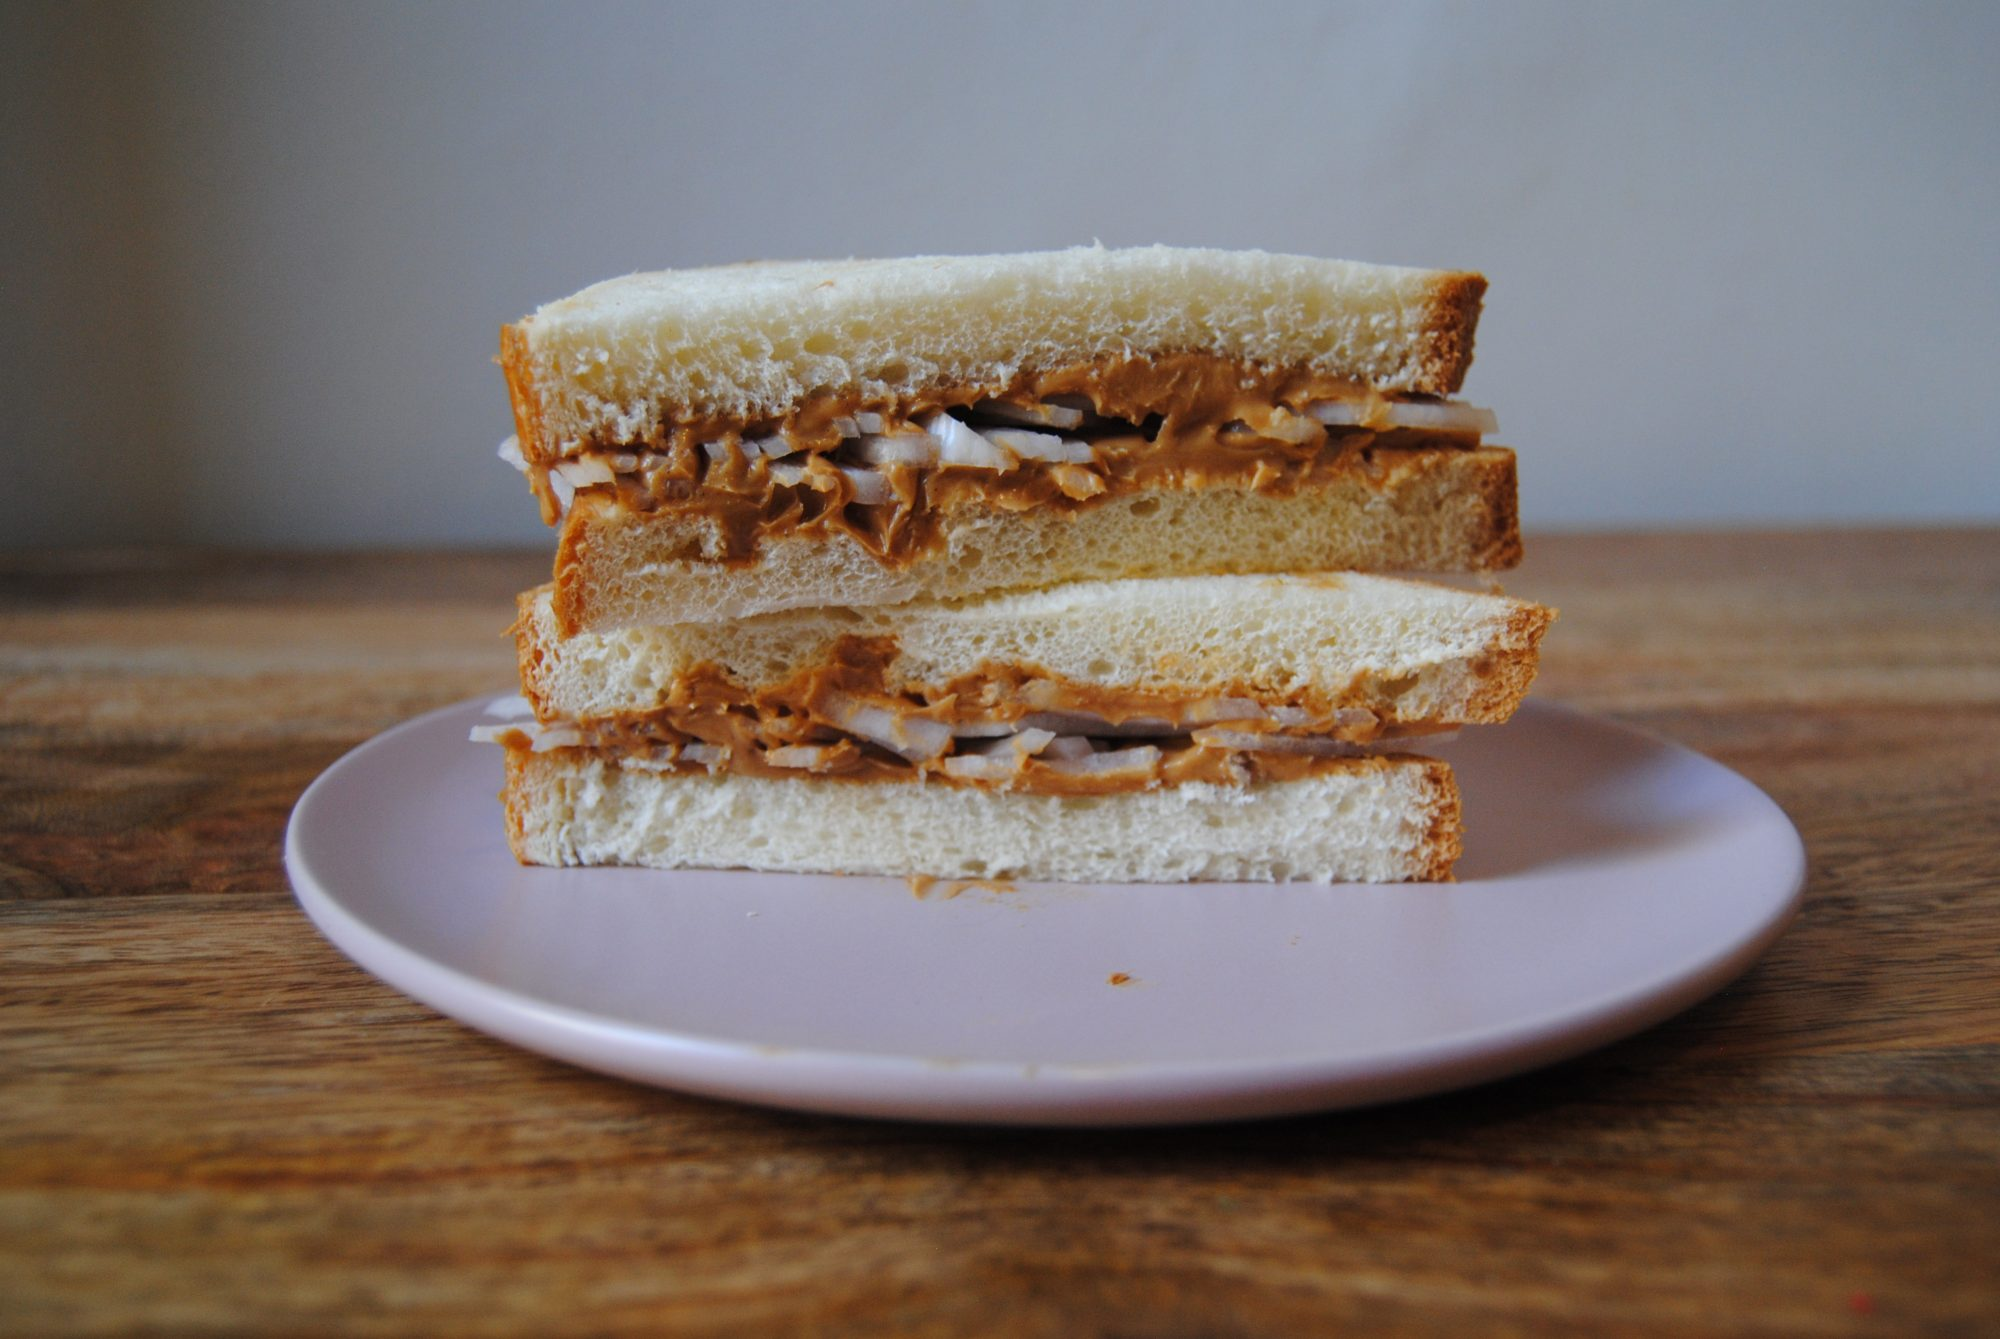 I Made the Weirdest Sandwiches on the Internet